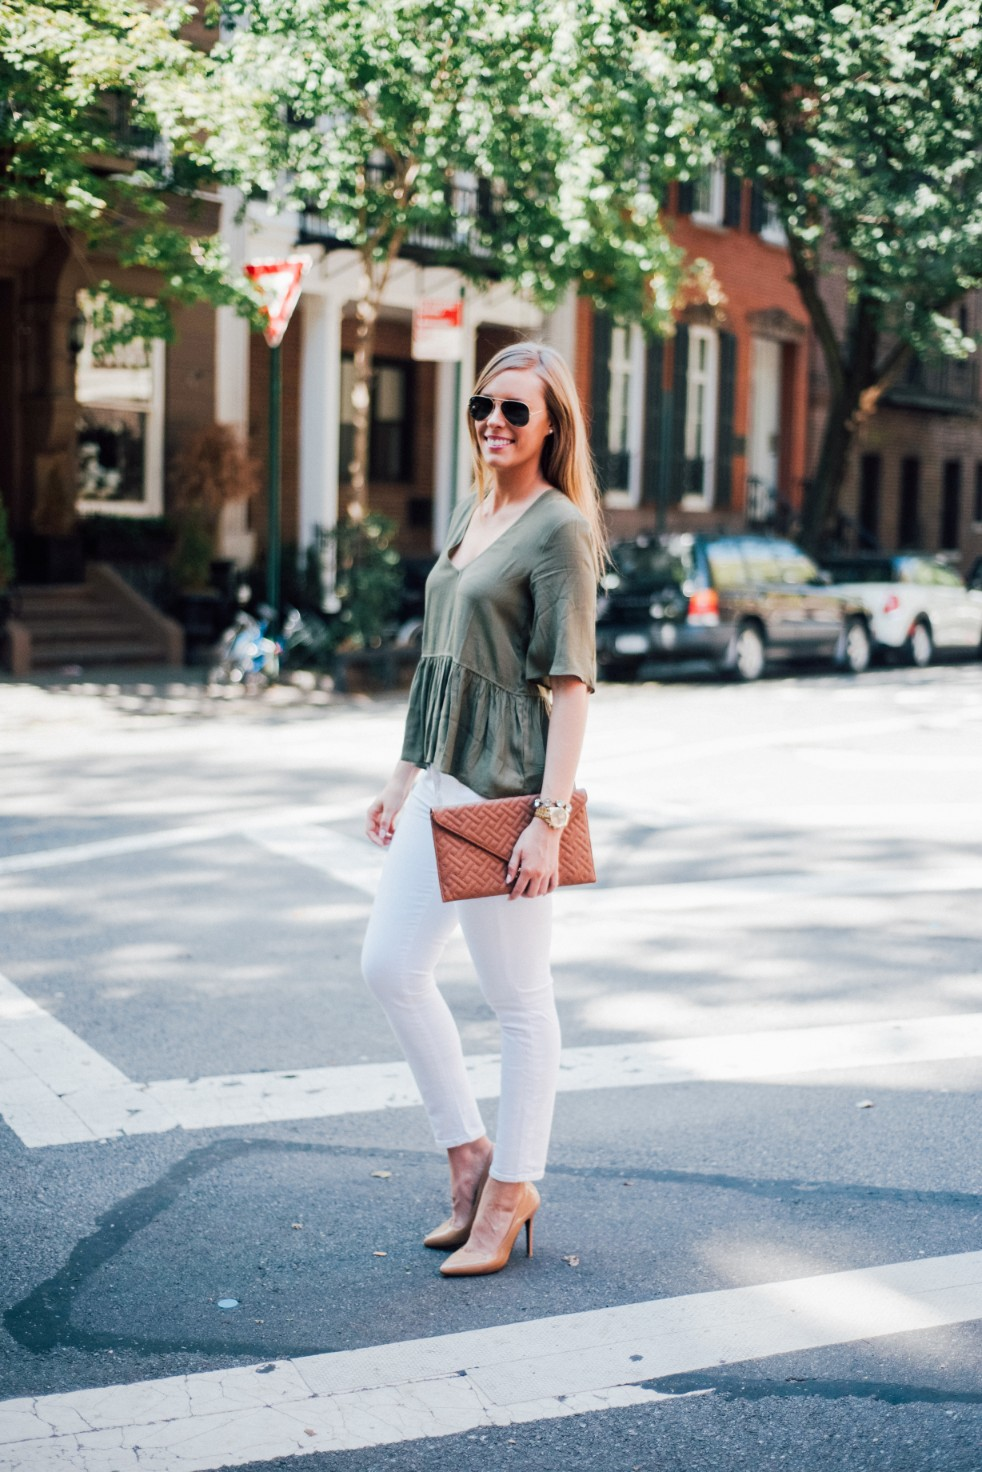 white jeans and peplum top west village fashion new york fashion blogger lauren slade style elixir blog spring summer outfit ideas 2 - Style Sessions - White Jeans and Peplum Top in the West Village featured by popular US style blogger, Style Elixir